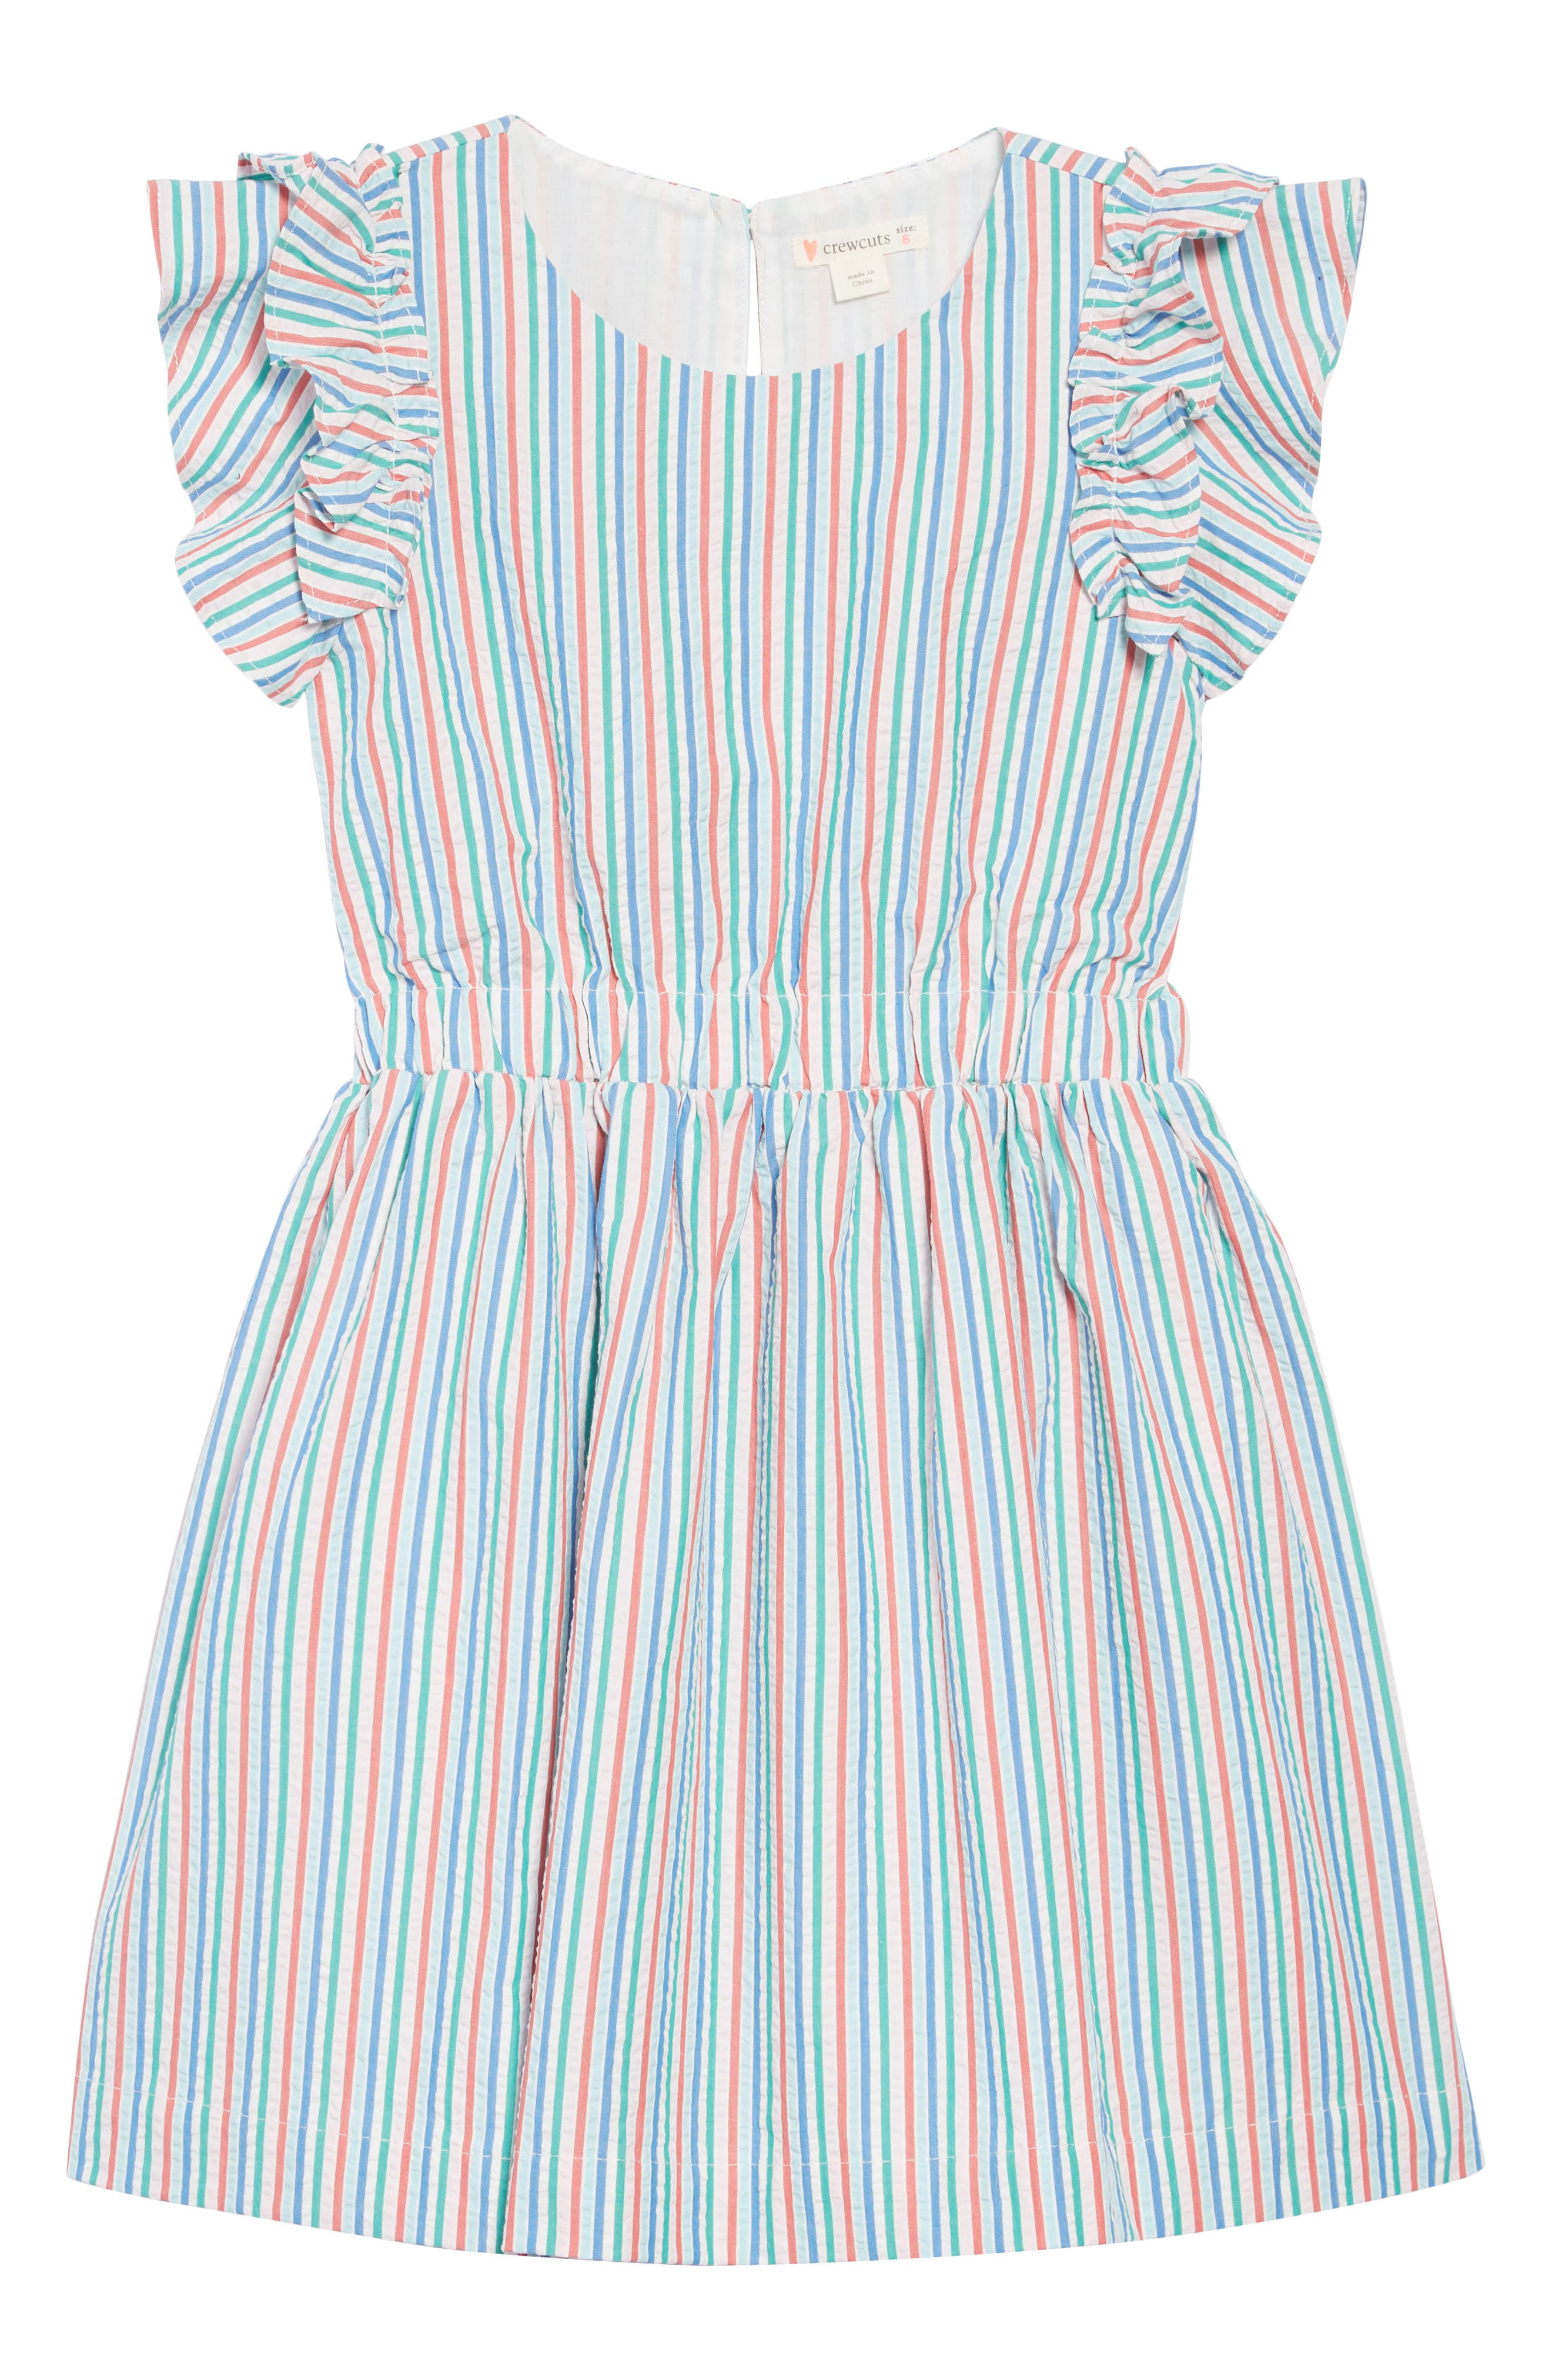 CREWCUTS BY J.CREW, Kate Ruffle Seersucker Dress, Main thumbnail 1, color, IVORY BLUE MULTI